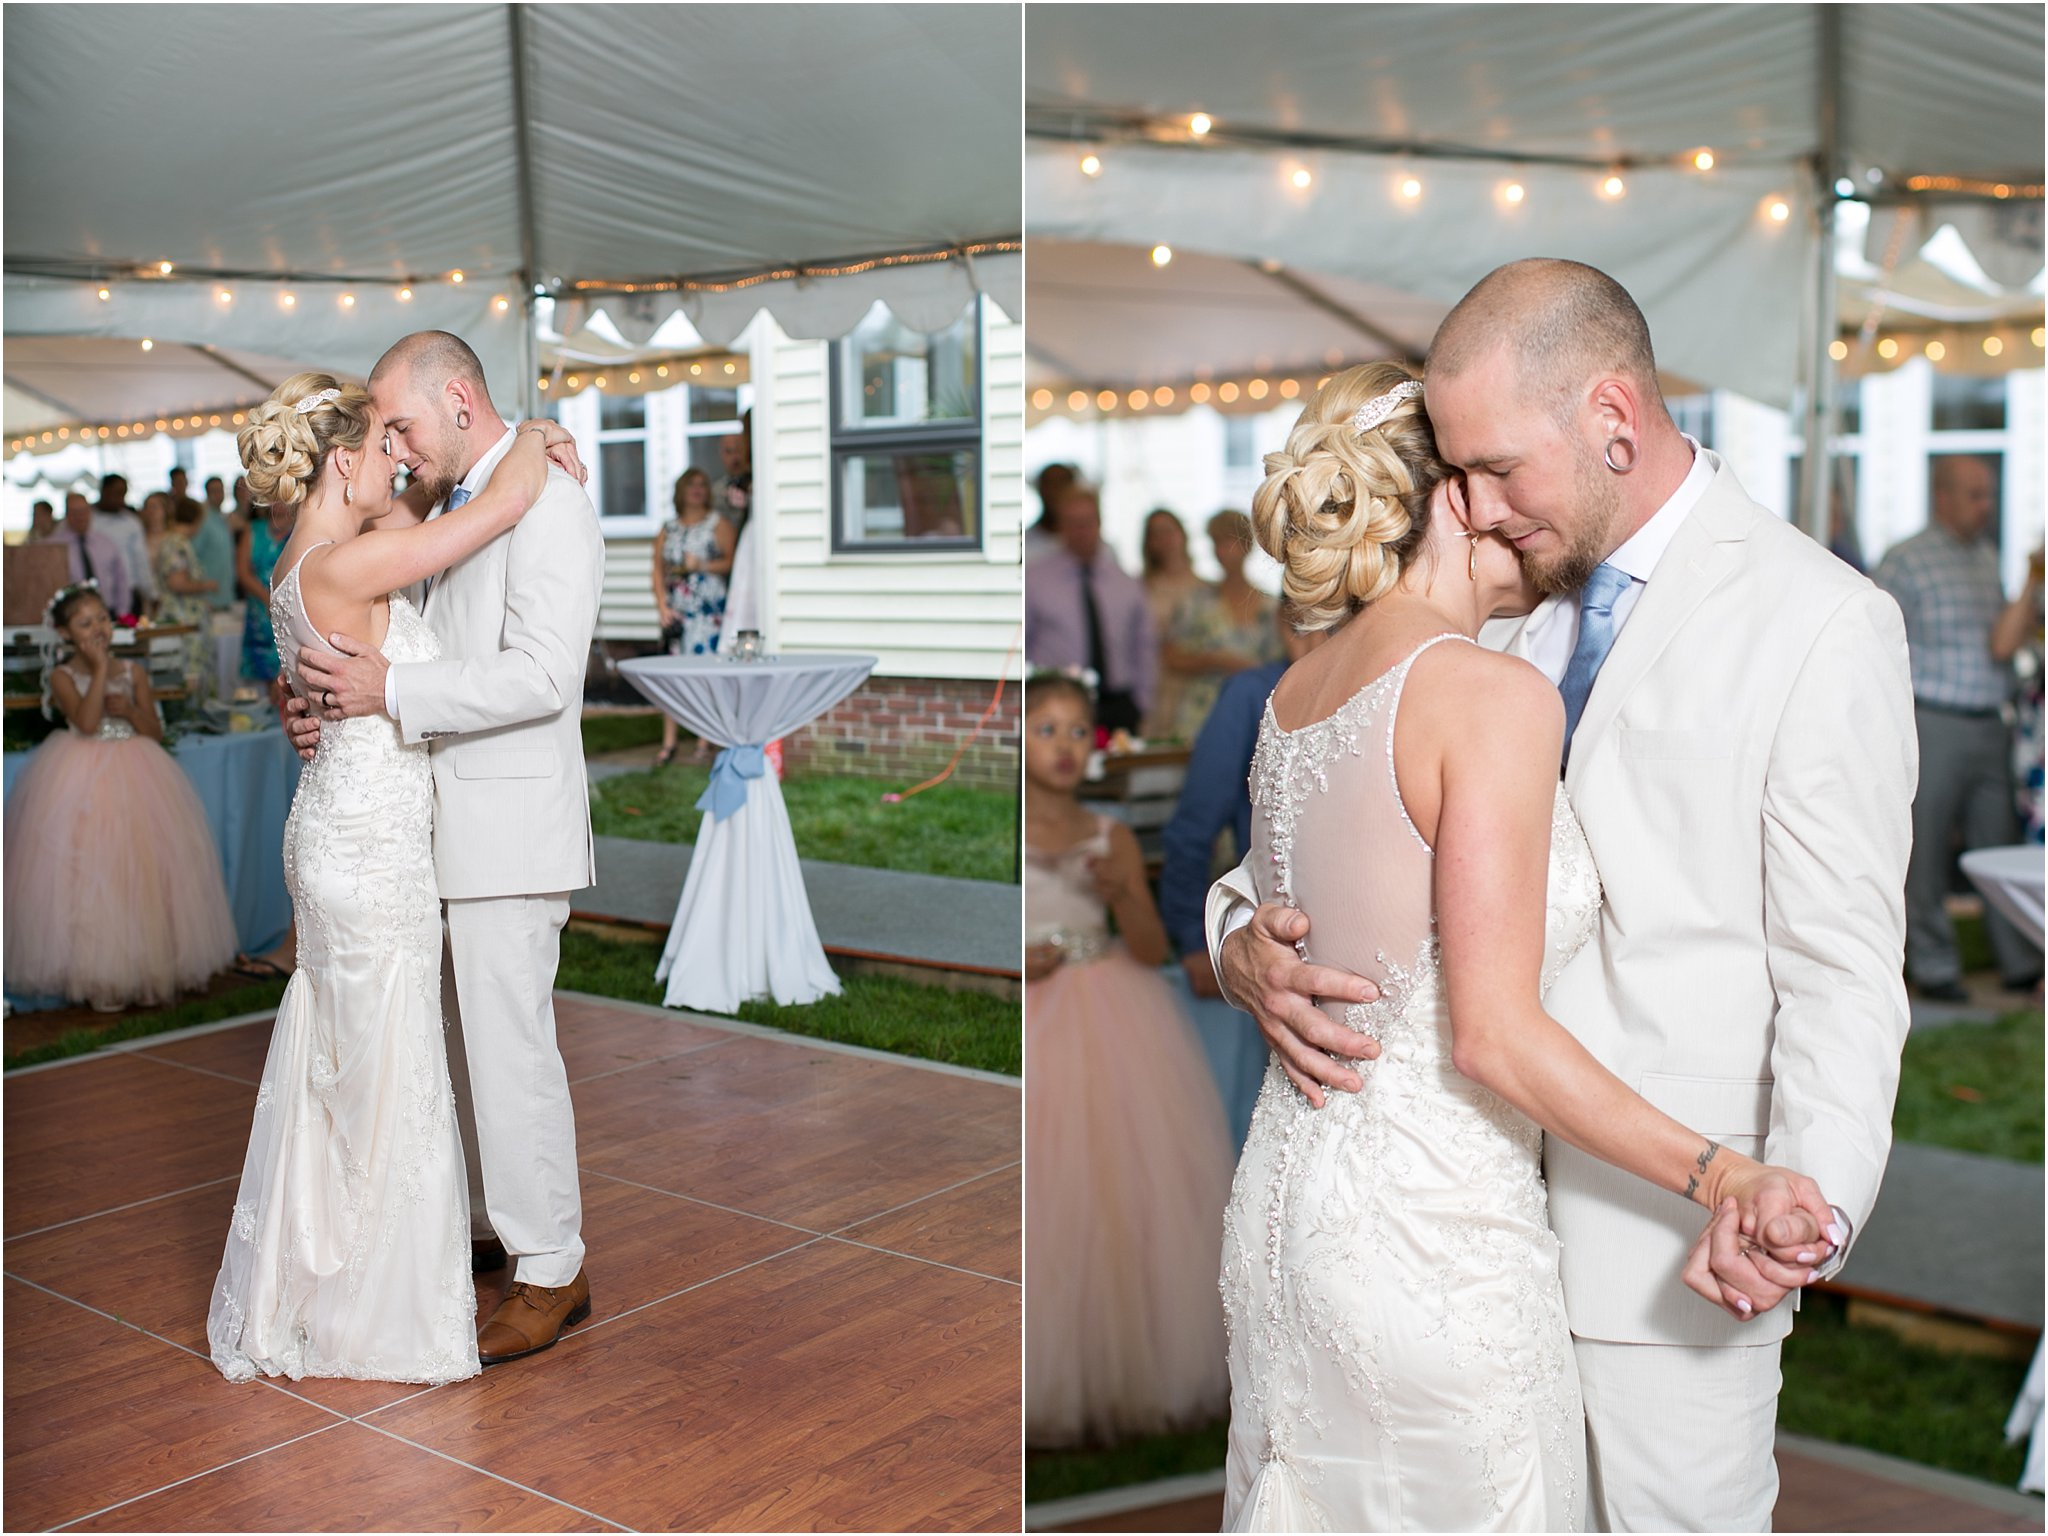 jessica_ryan_photography_virginia_virginiabeachweddingphotographer_studioIdo_backyardwedding_waterfrontwedding_1715